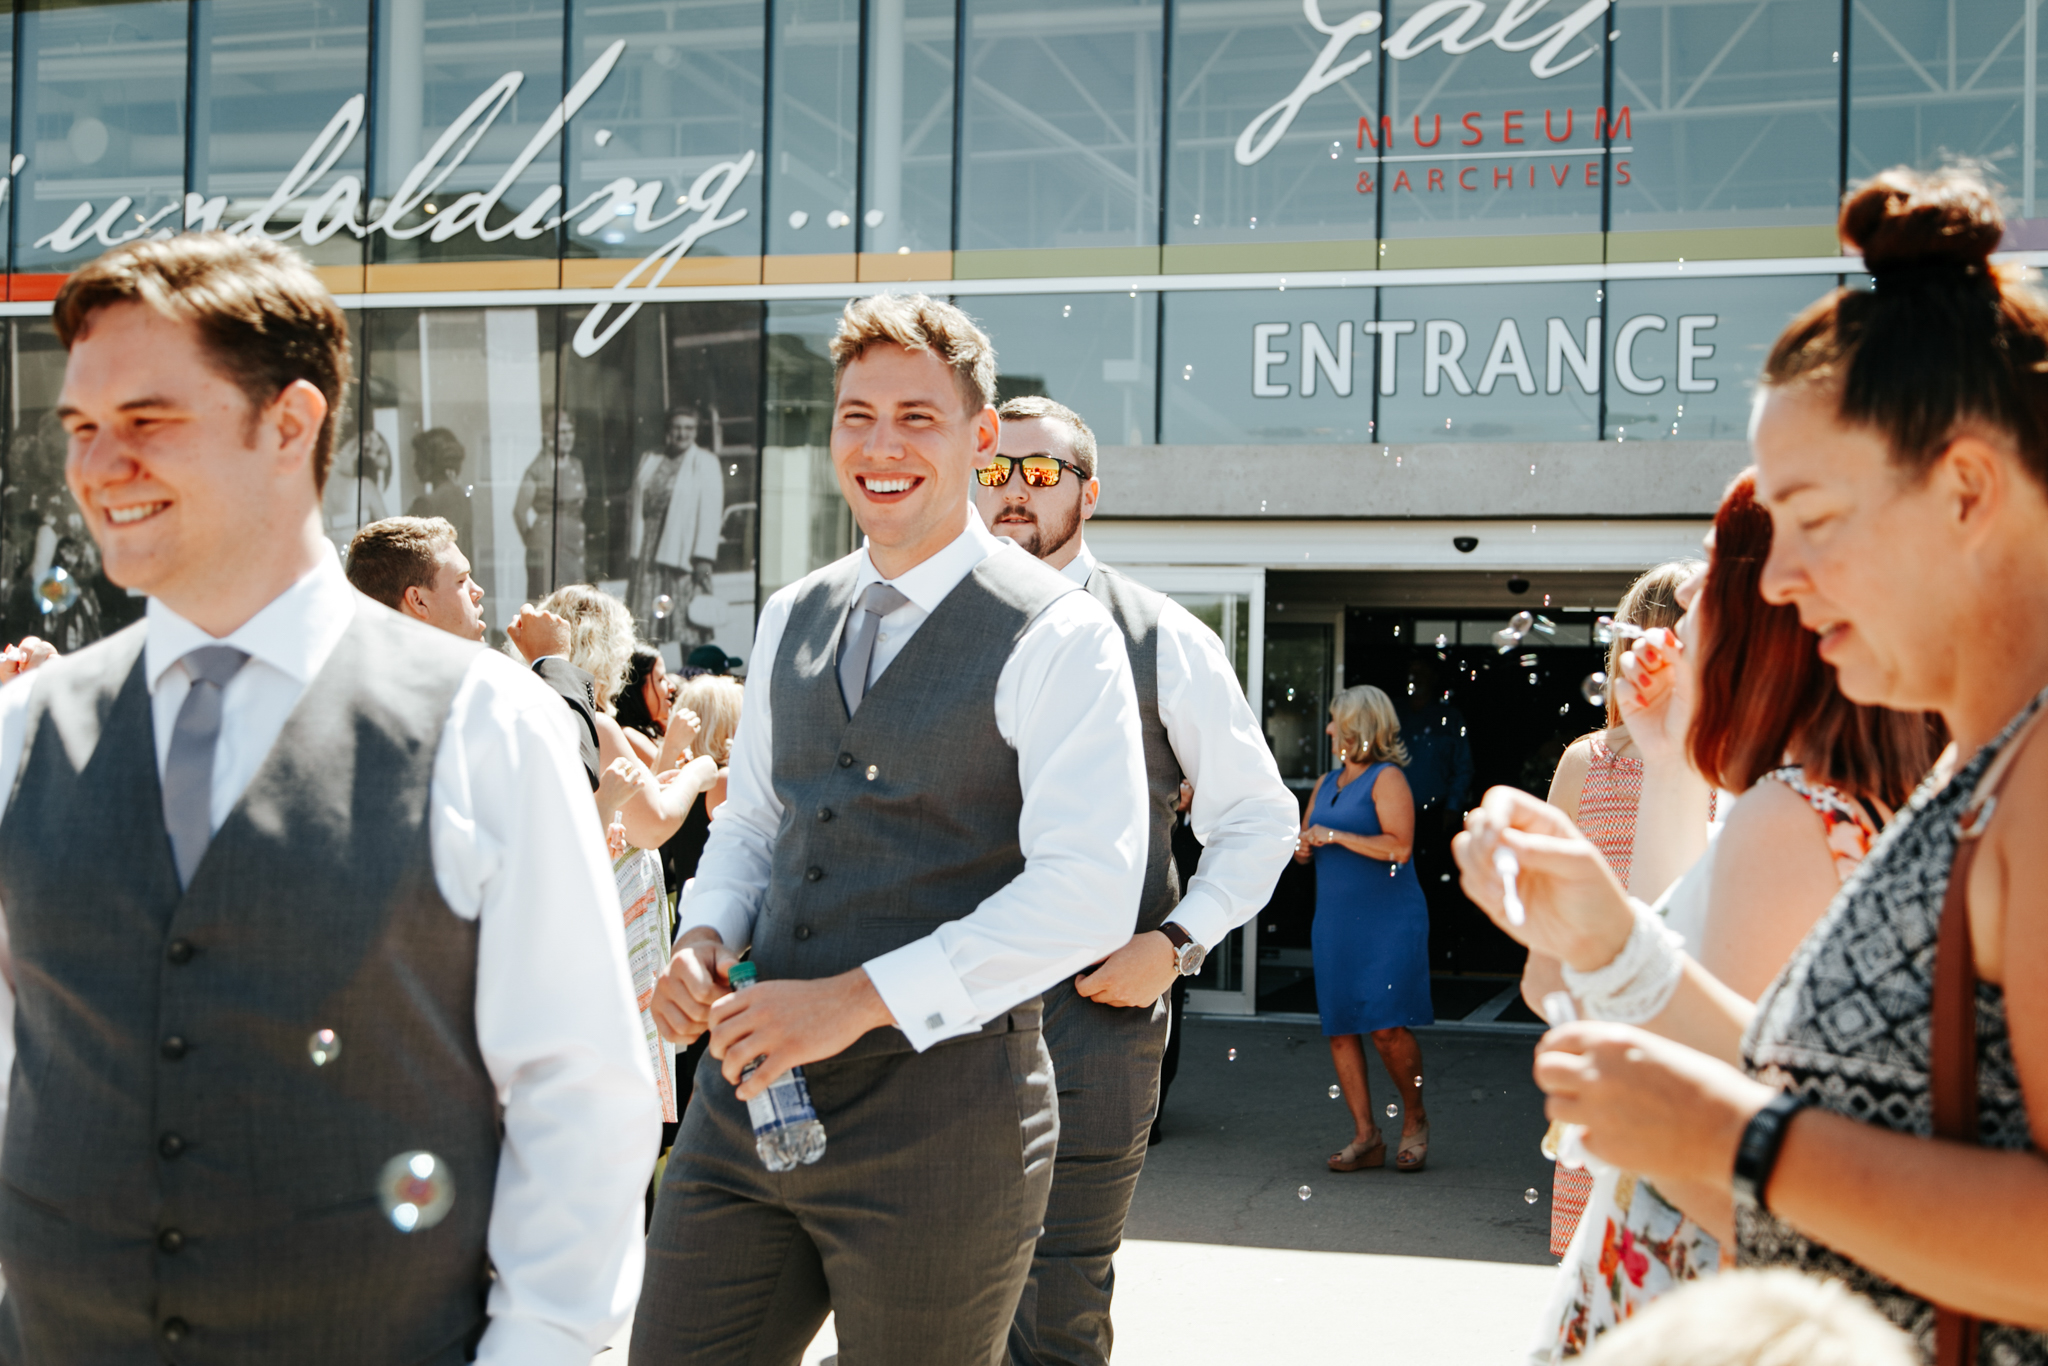 lethbridge-wedding-photographer-love-and-be-loved-photography-trent-danielle-galt-reception-picture-image-photo-68.jpg